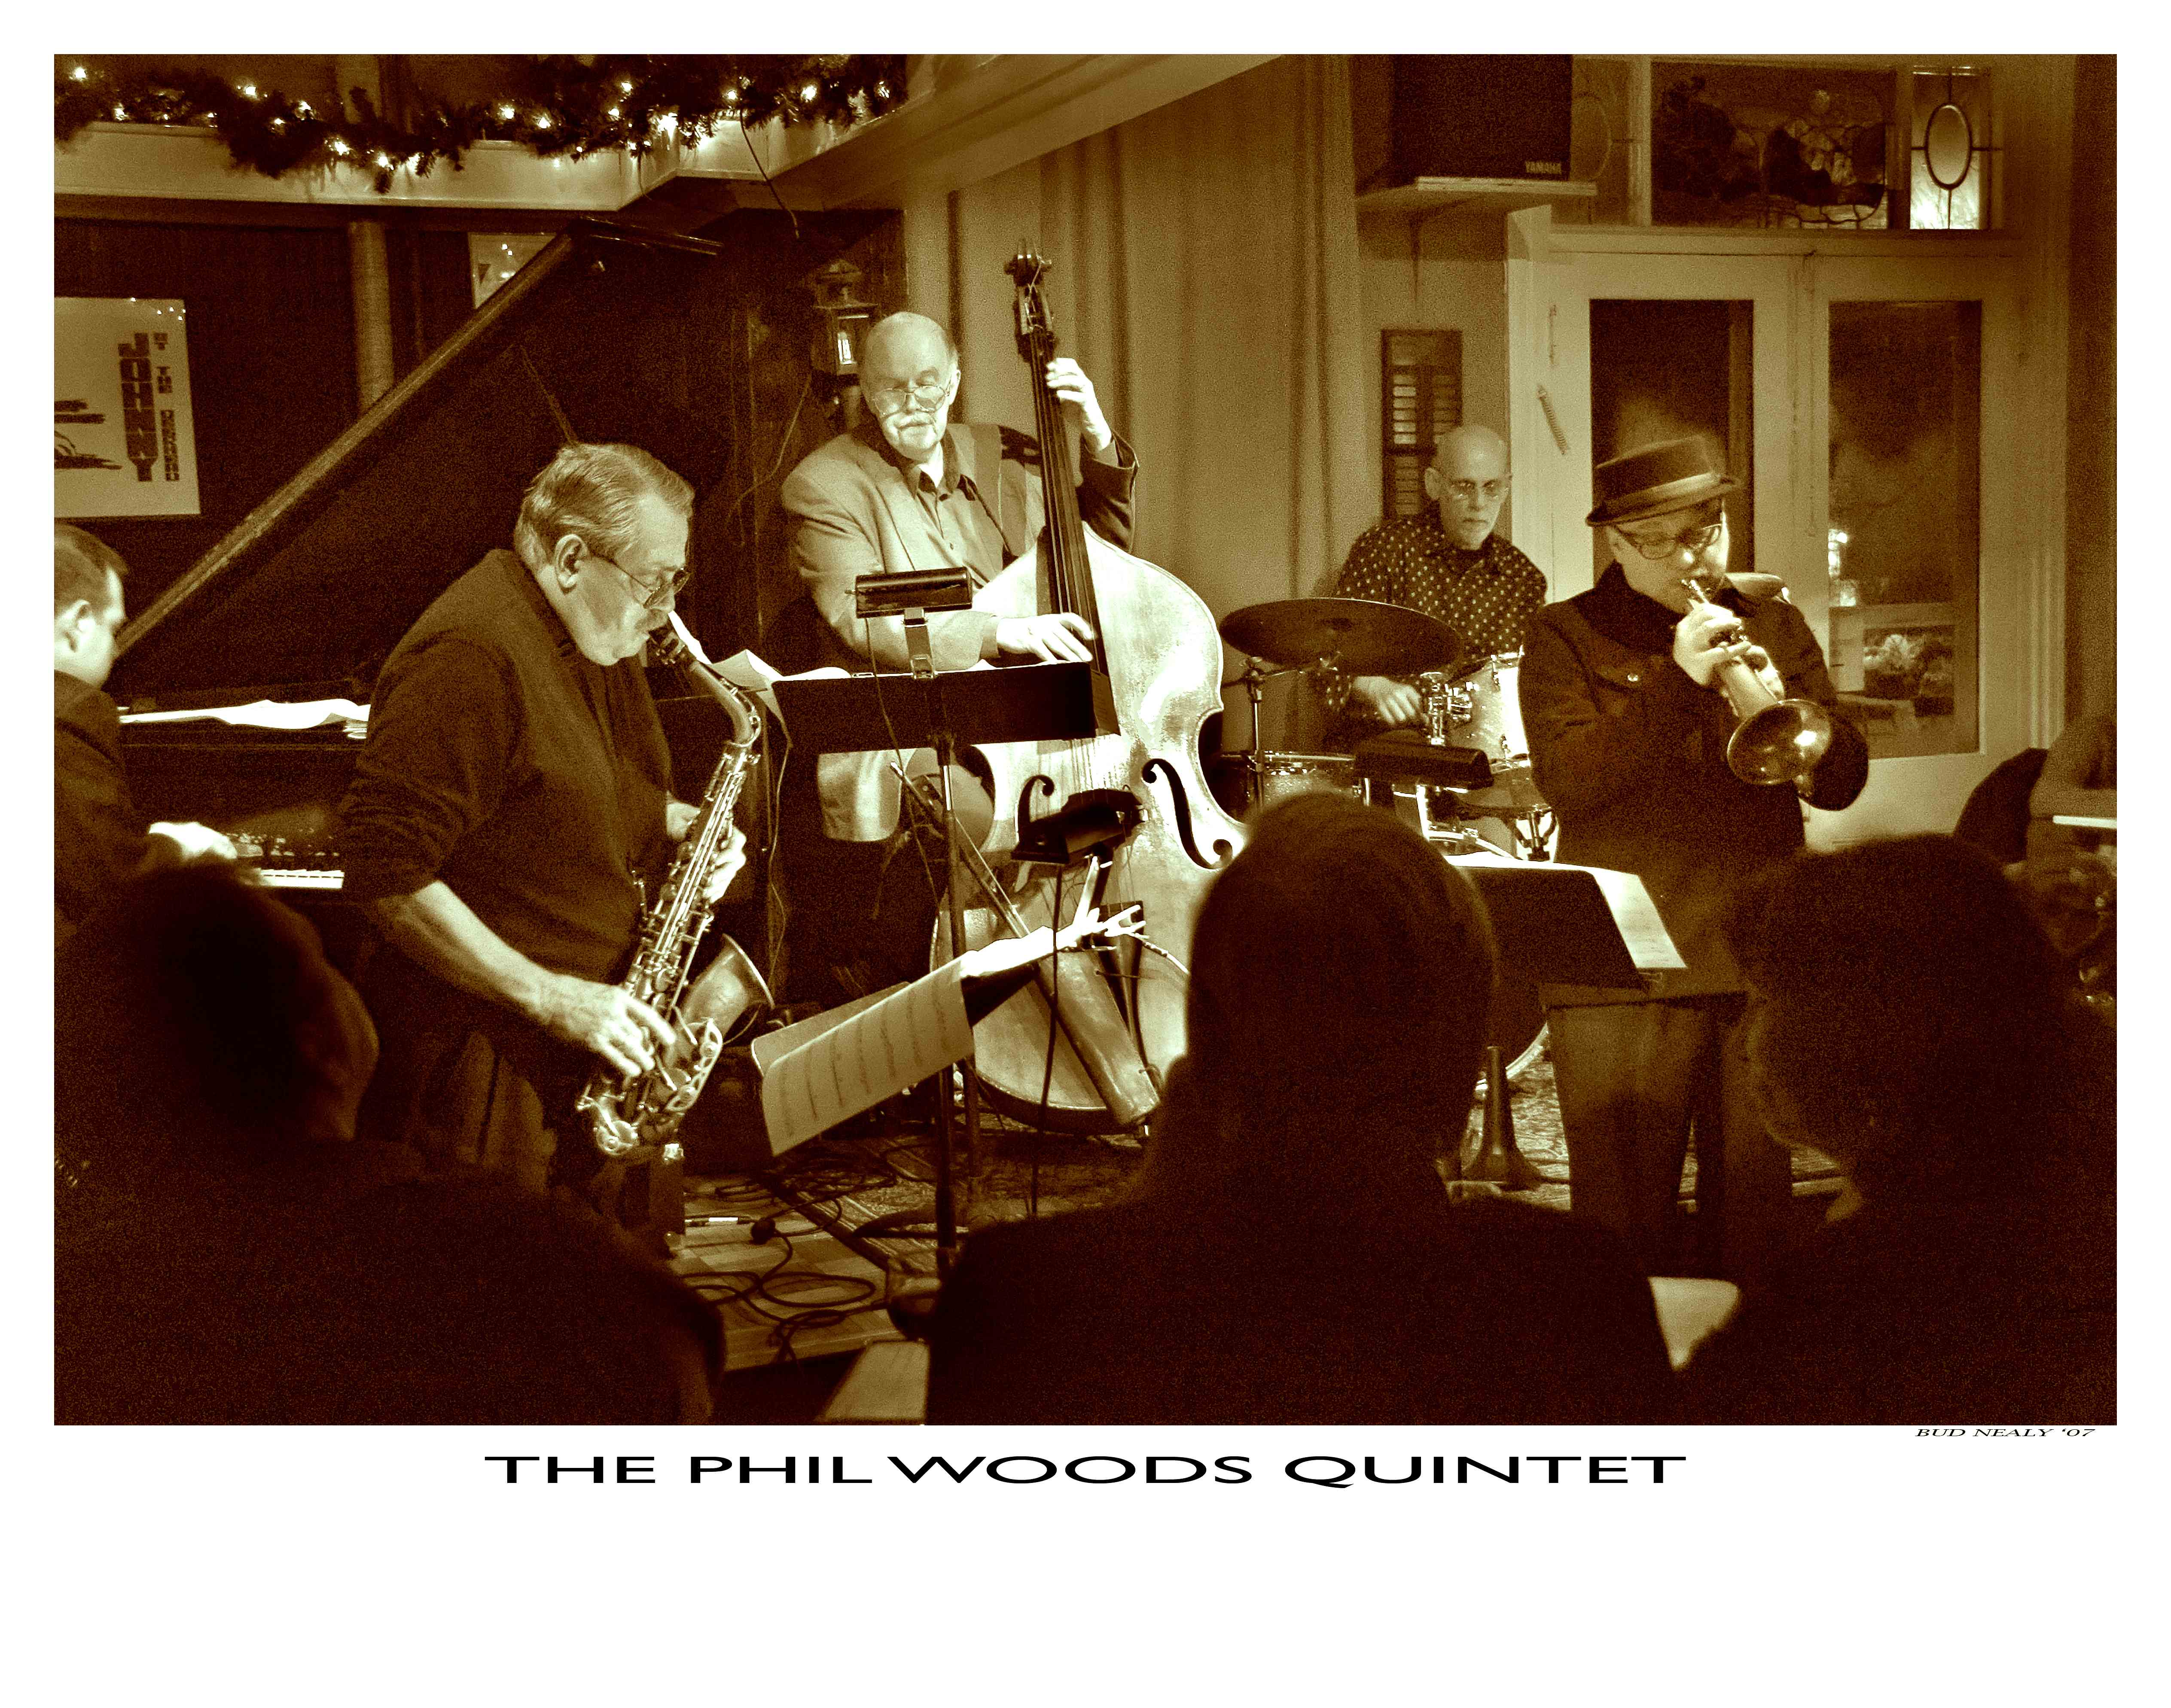 1390495114_Phil_woods_quintet.jpg